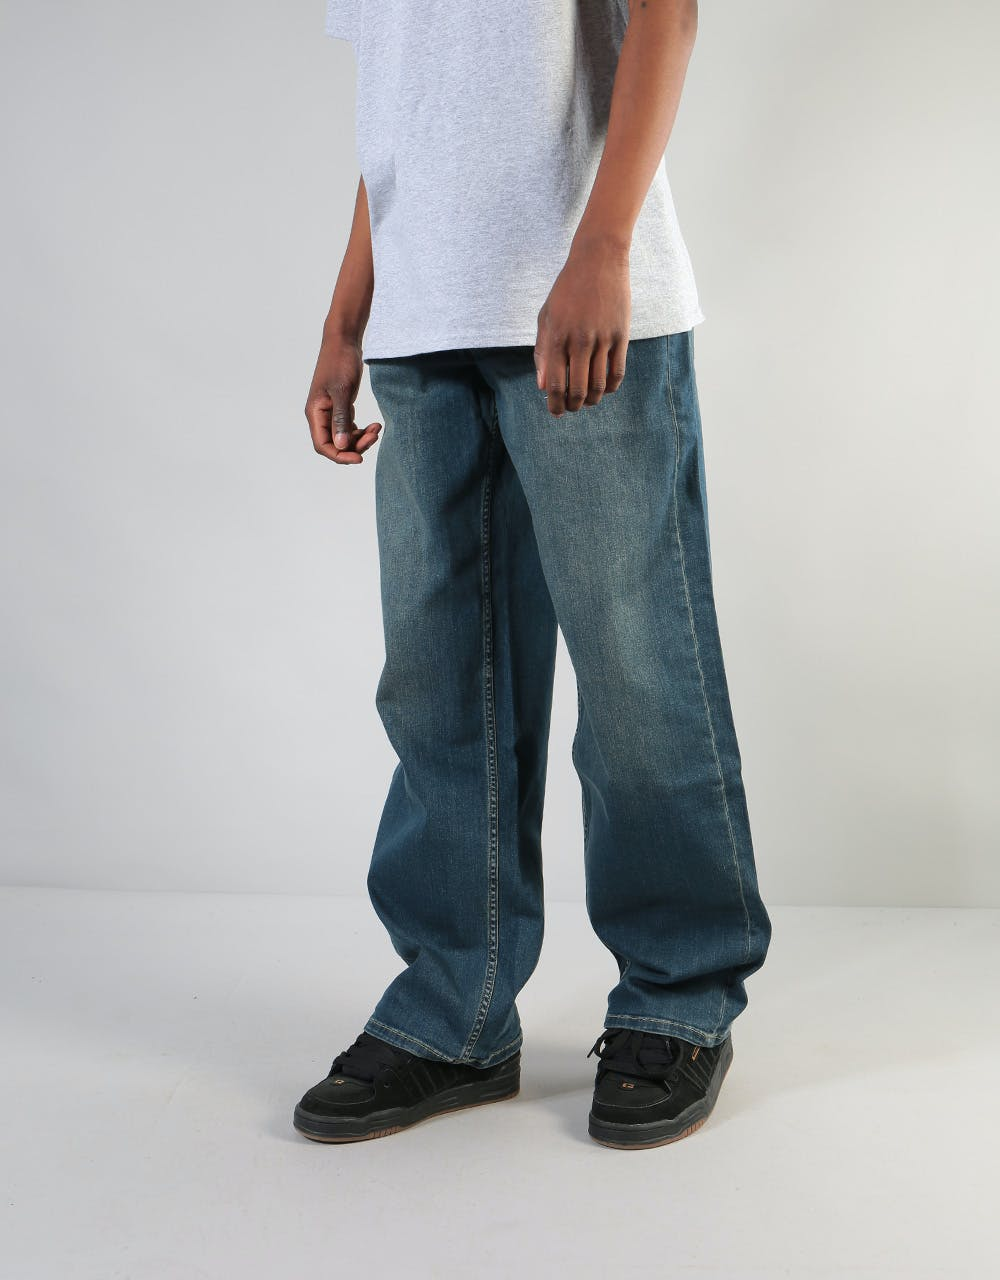 Baggy-Clothing. Top 10 Outdated Fashion & Clothing Trends to Avoid in 2020